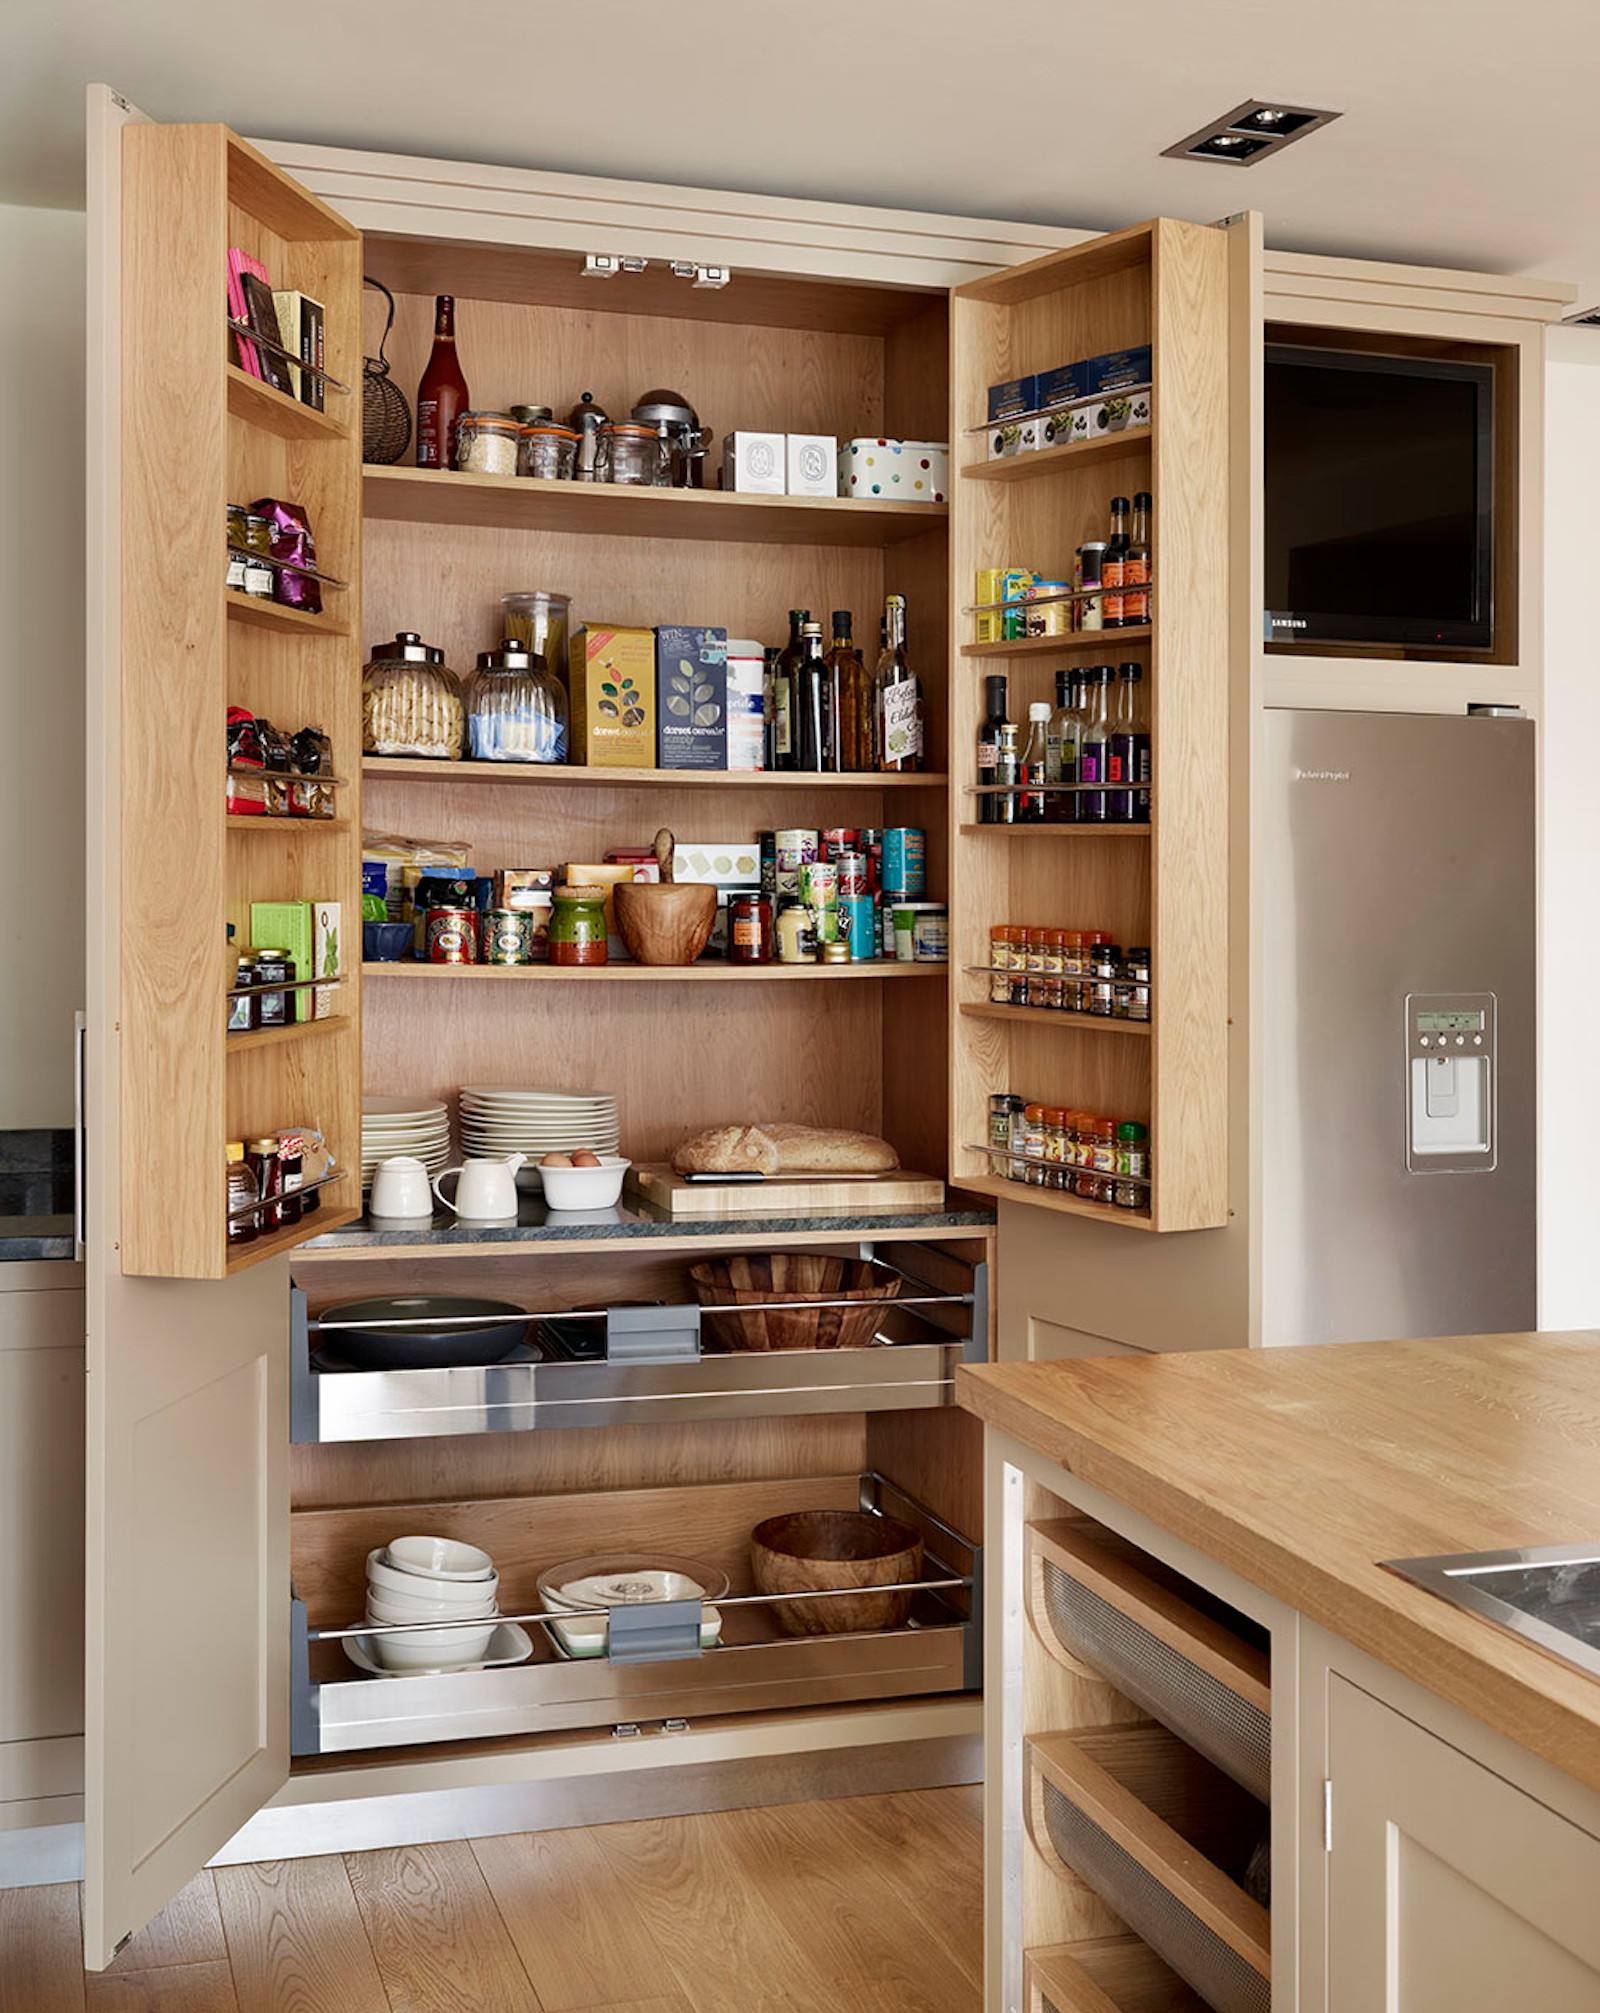 75 Beautiful Kitchen Pantry Pictures Ideas December 2020 Houzz